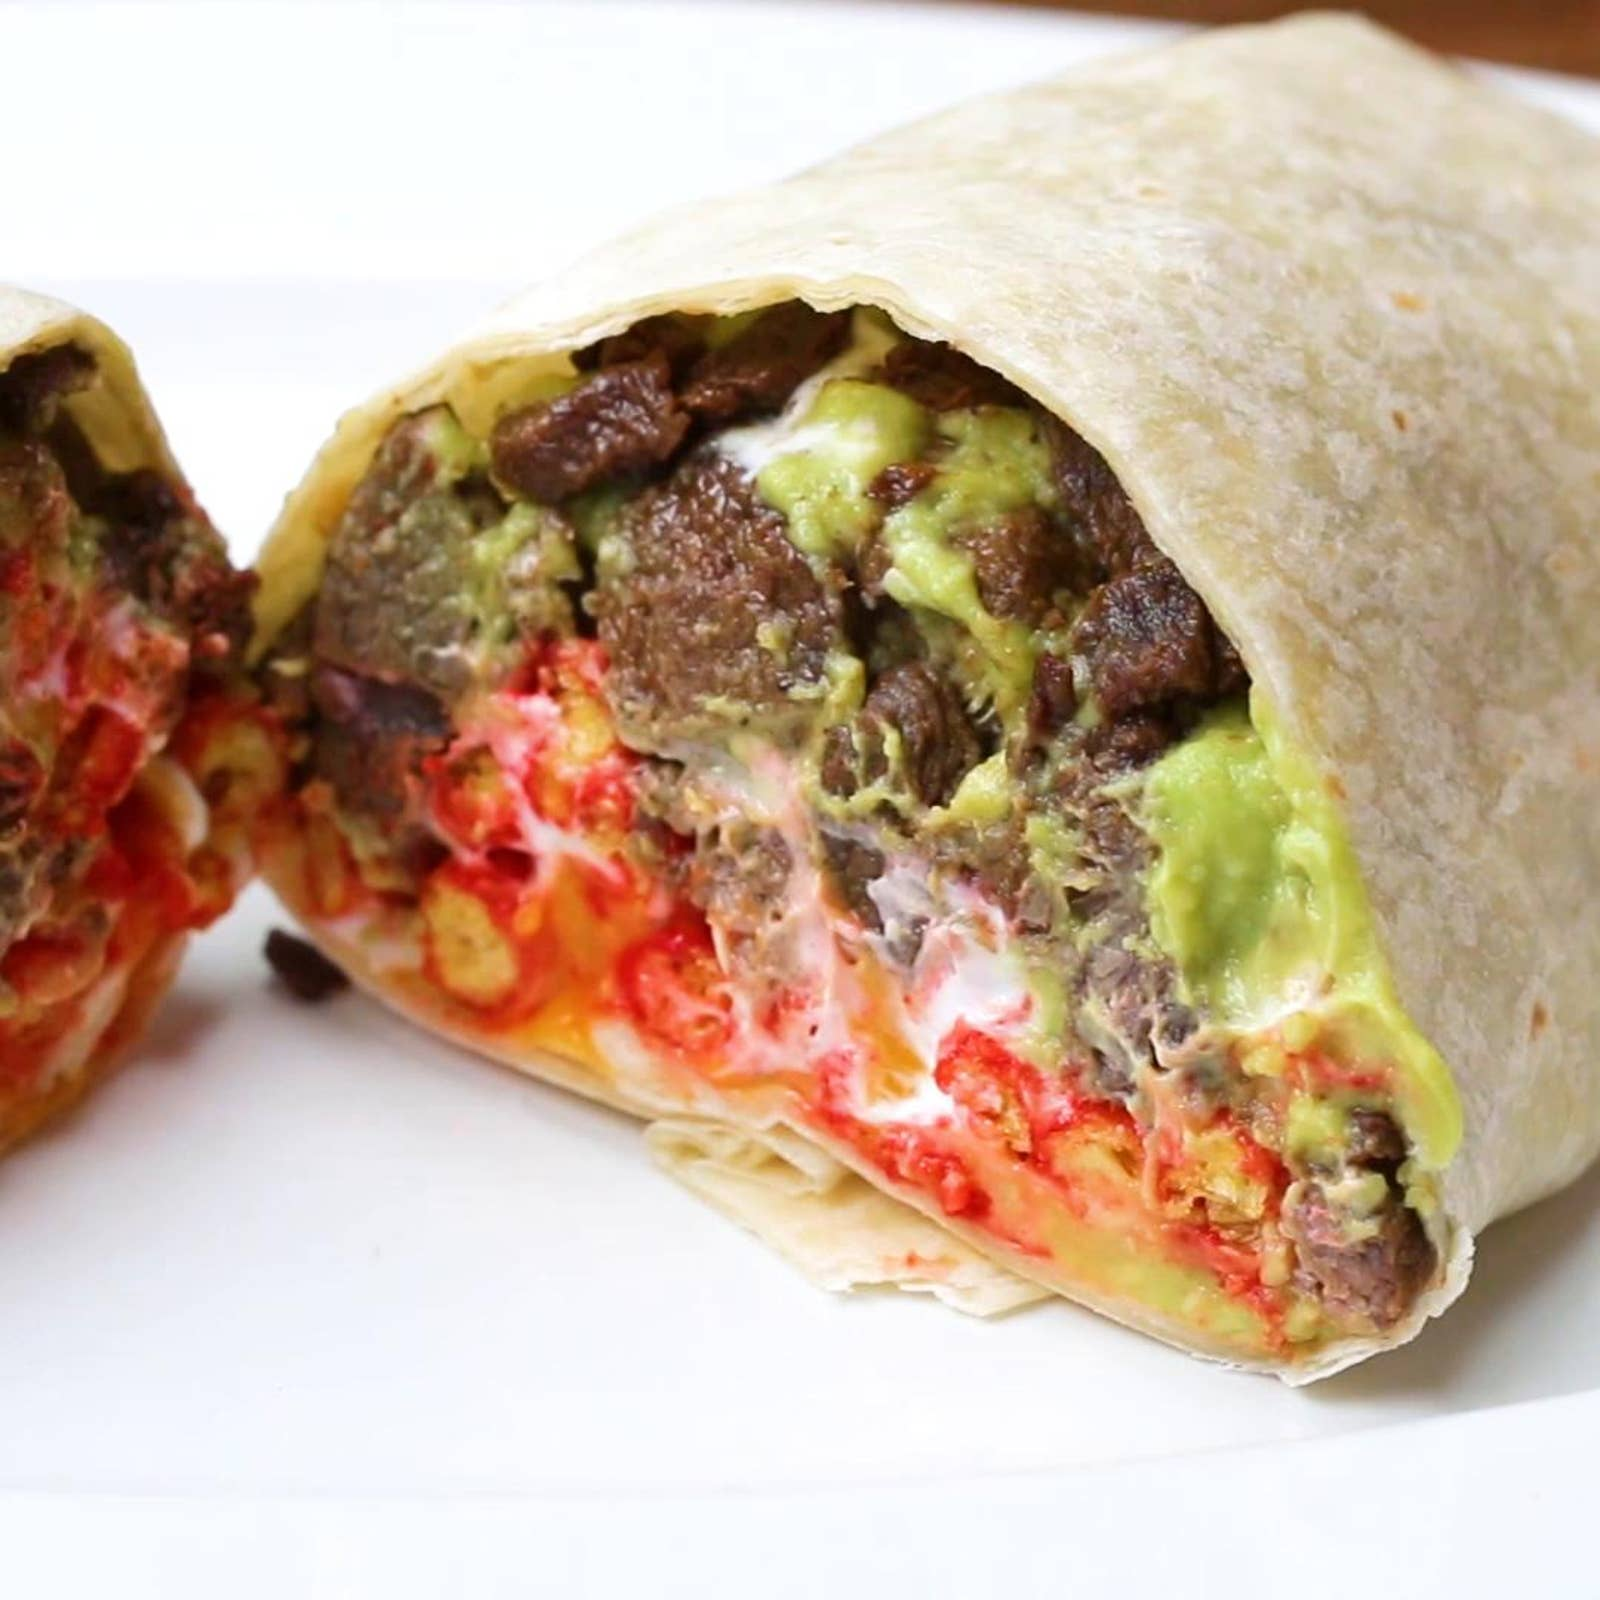 Hot Cheeto Burrito